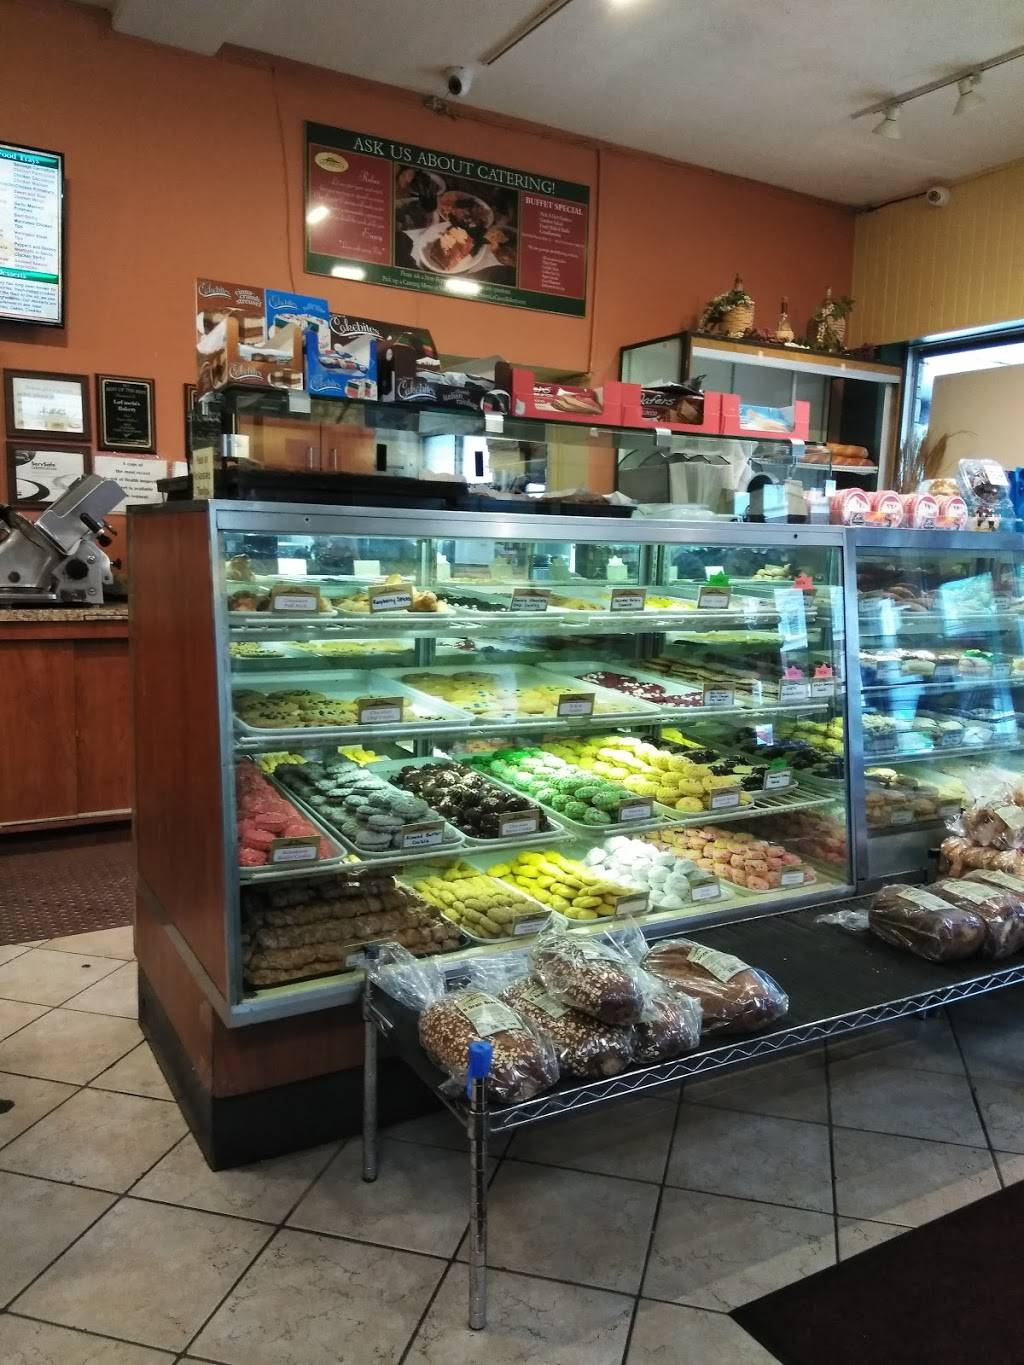 La Cascias Bakery | meal delivery | 418 Main St, Medford, MA 02155, USA | 7813965041 OR +1 781-396-5041